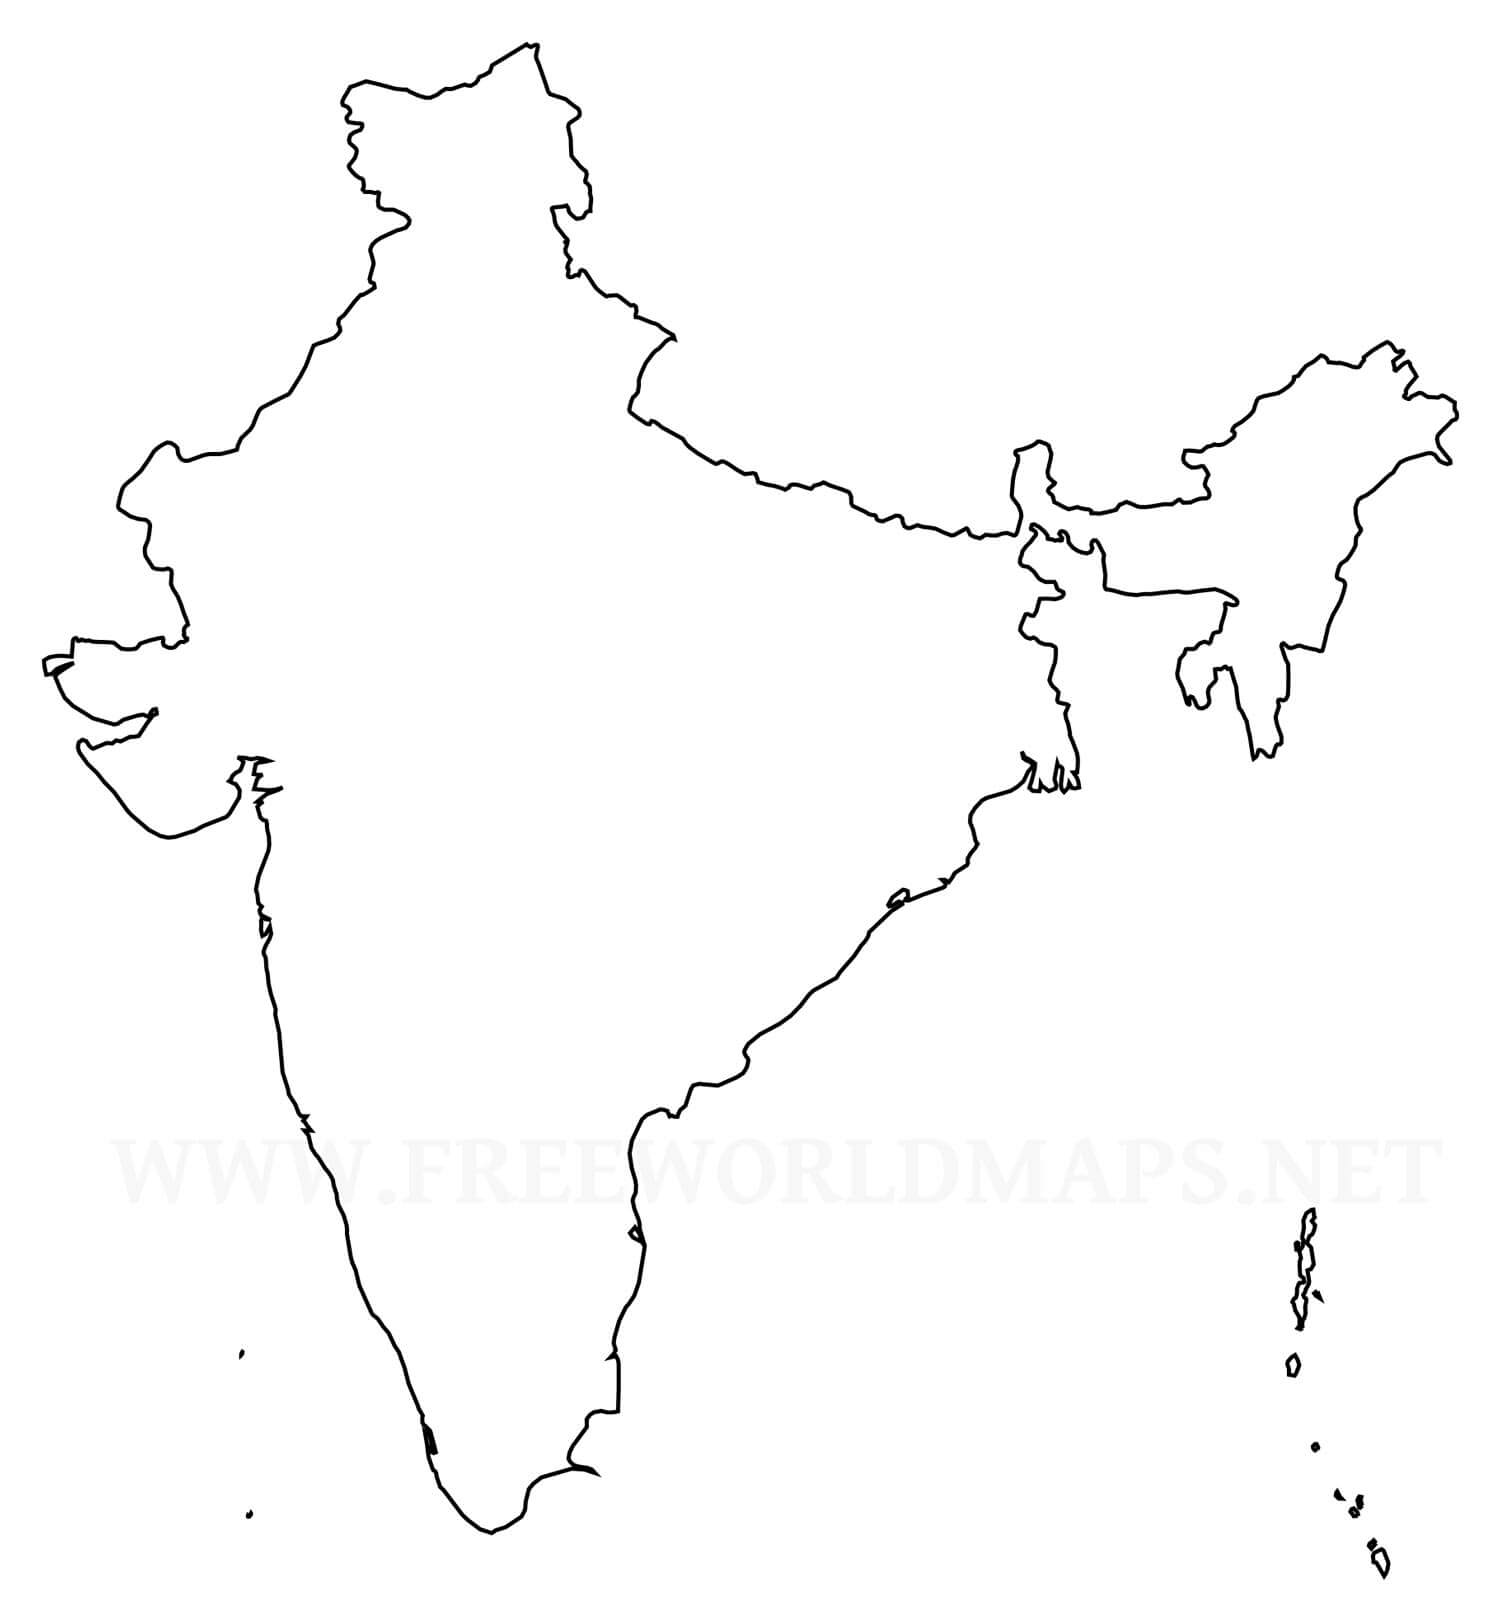 Indiaoutlinemapjpg Decline Of European - Norway map outline